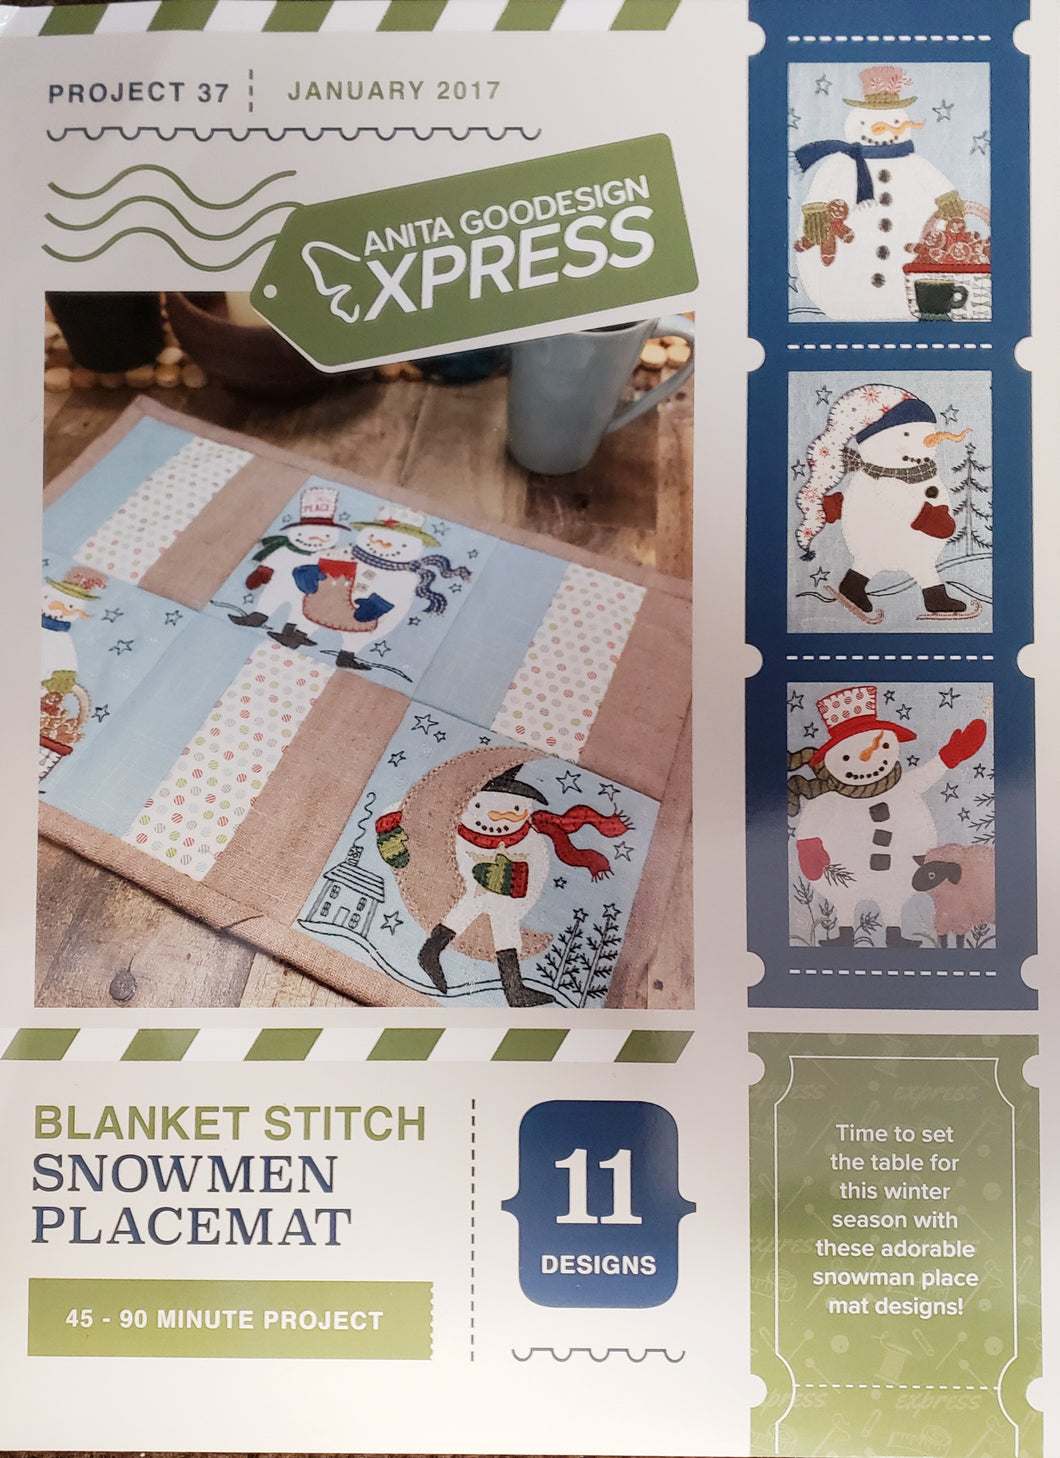 Anita Goodesign Express Blanket Stitch Snowmen Placemat